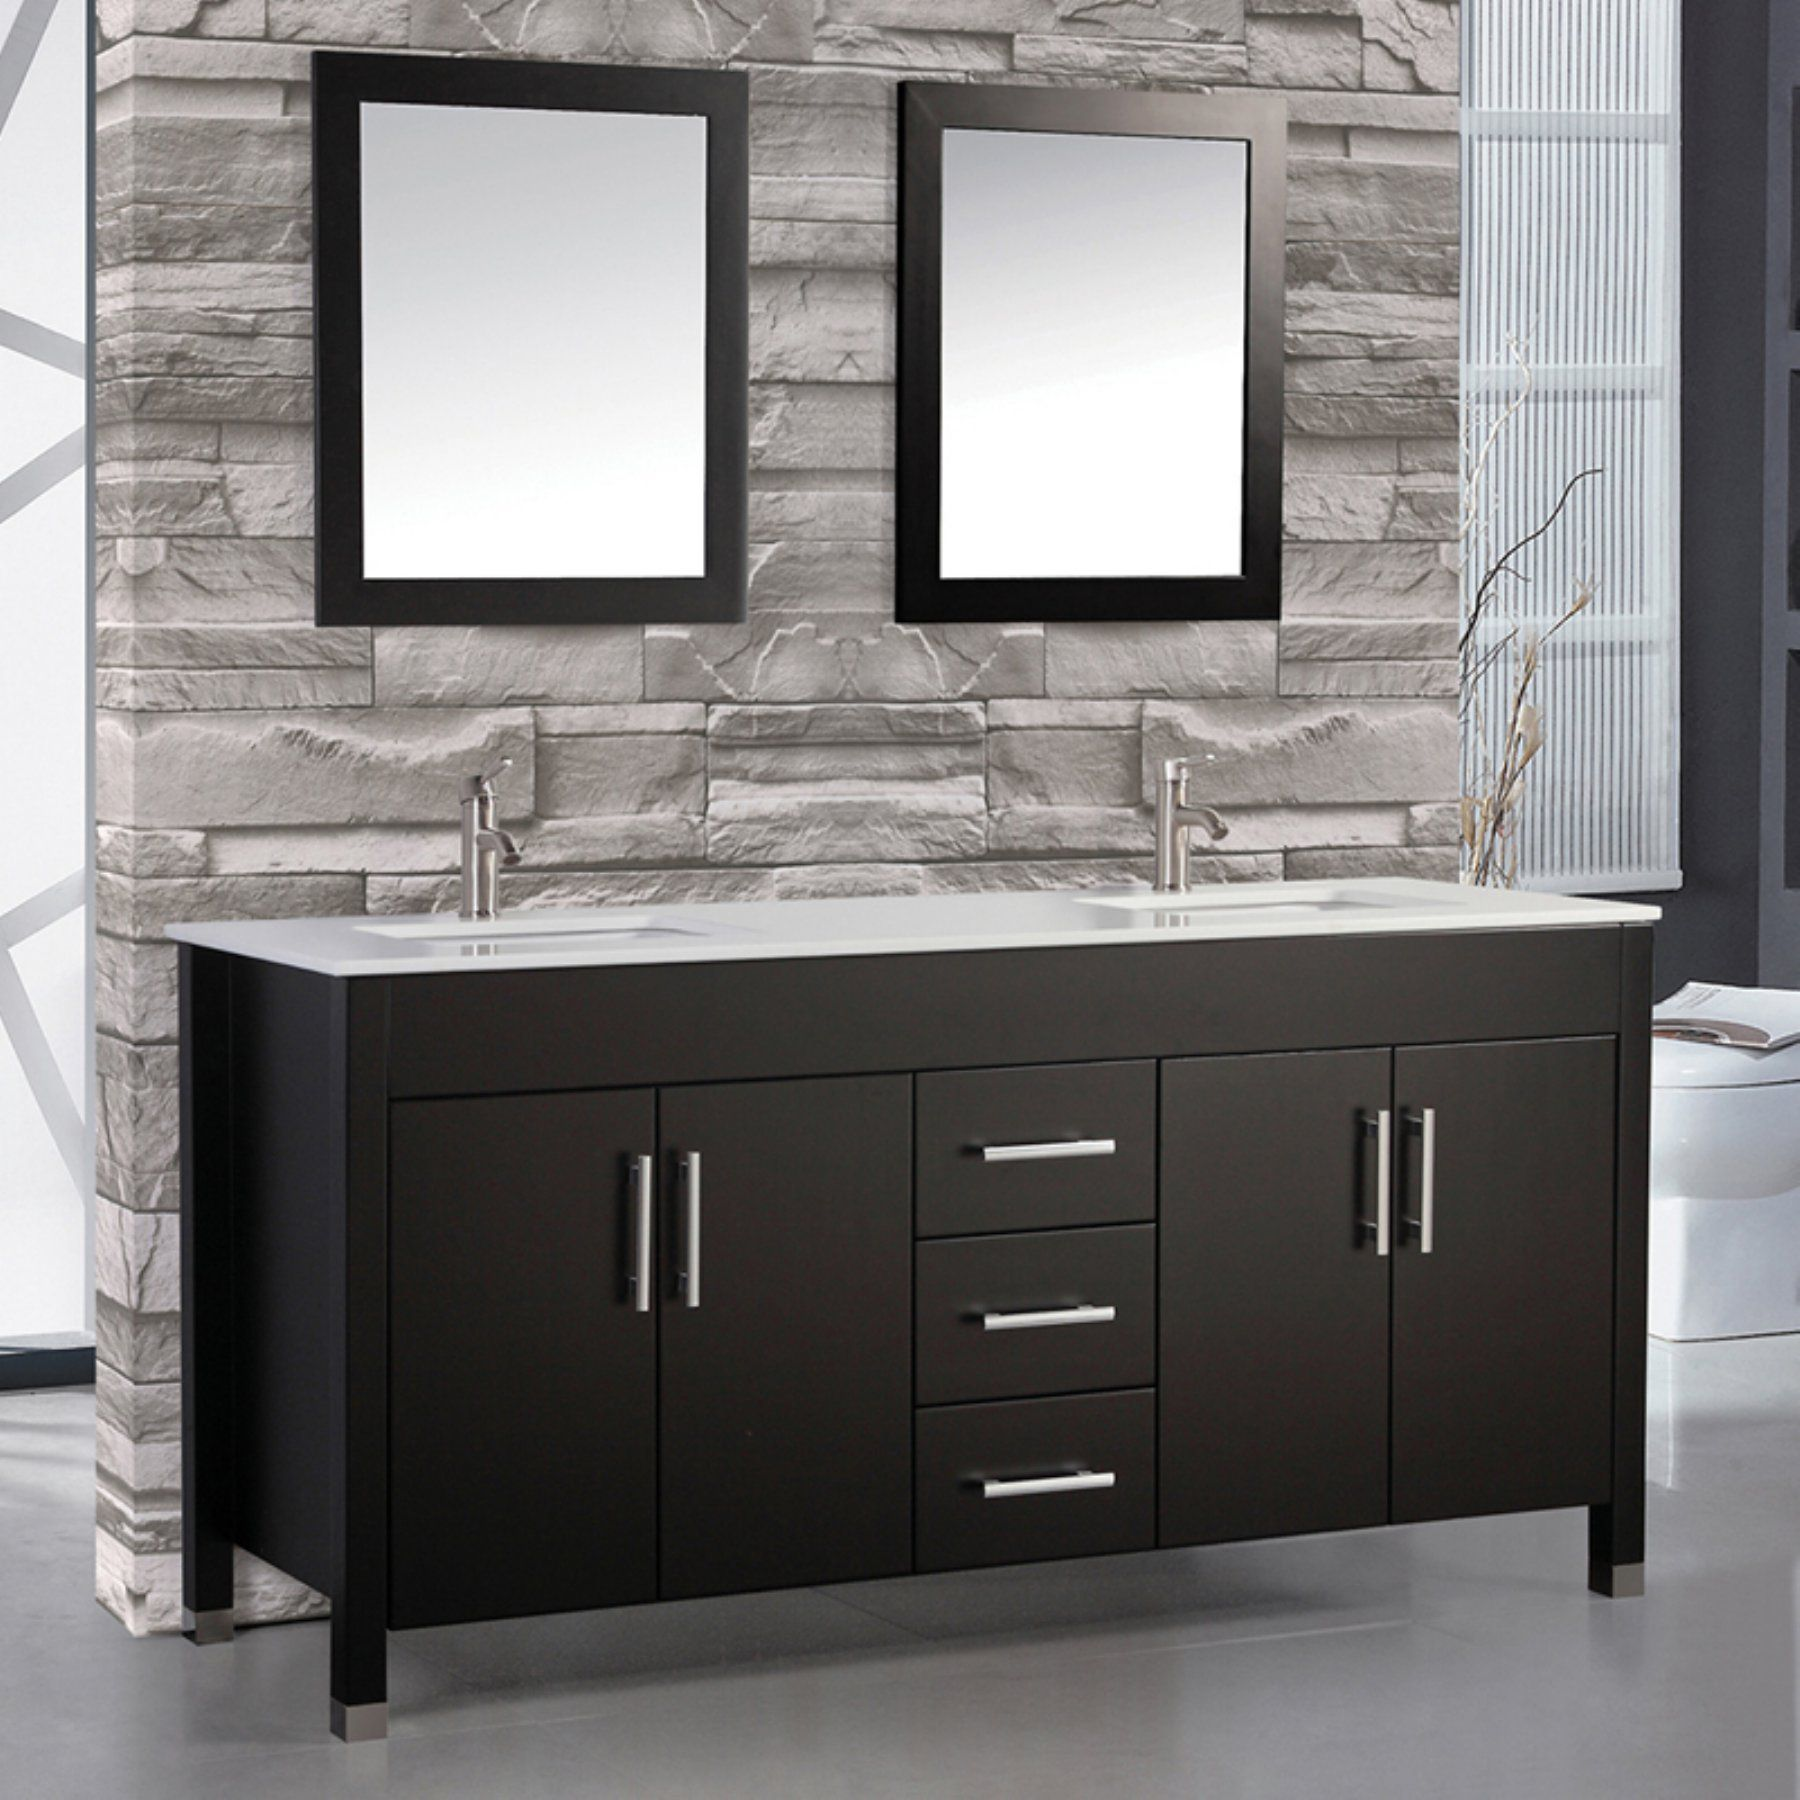 ms with in pin series it vanity virtu tempered glass found vincente top bathroom at set wh allmodern g single usa